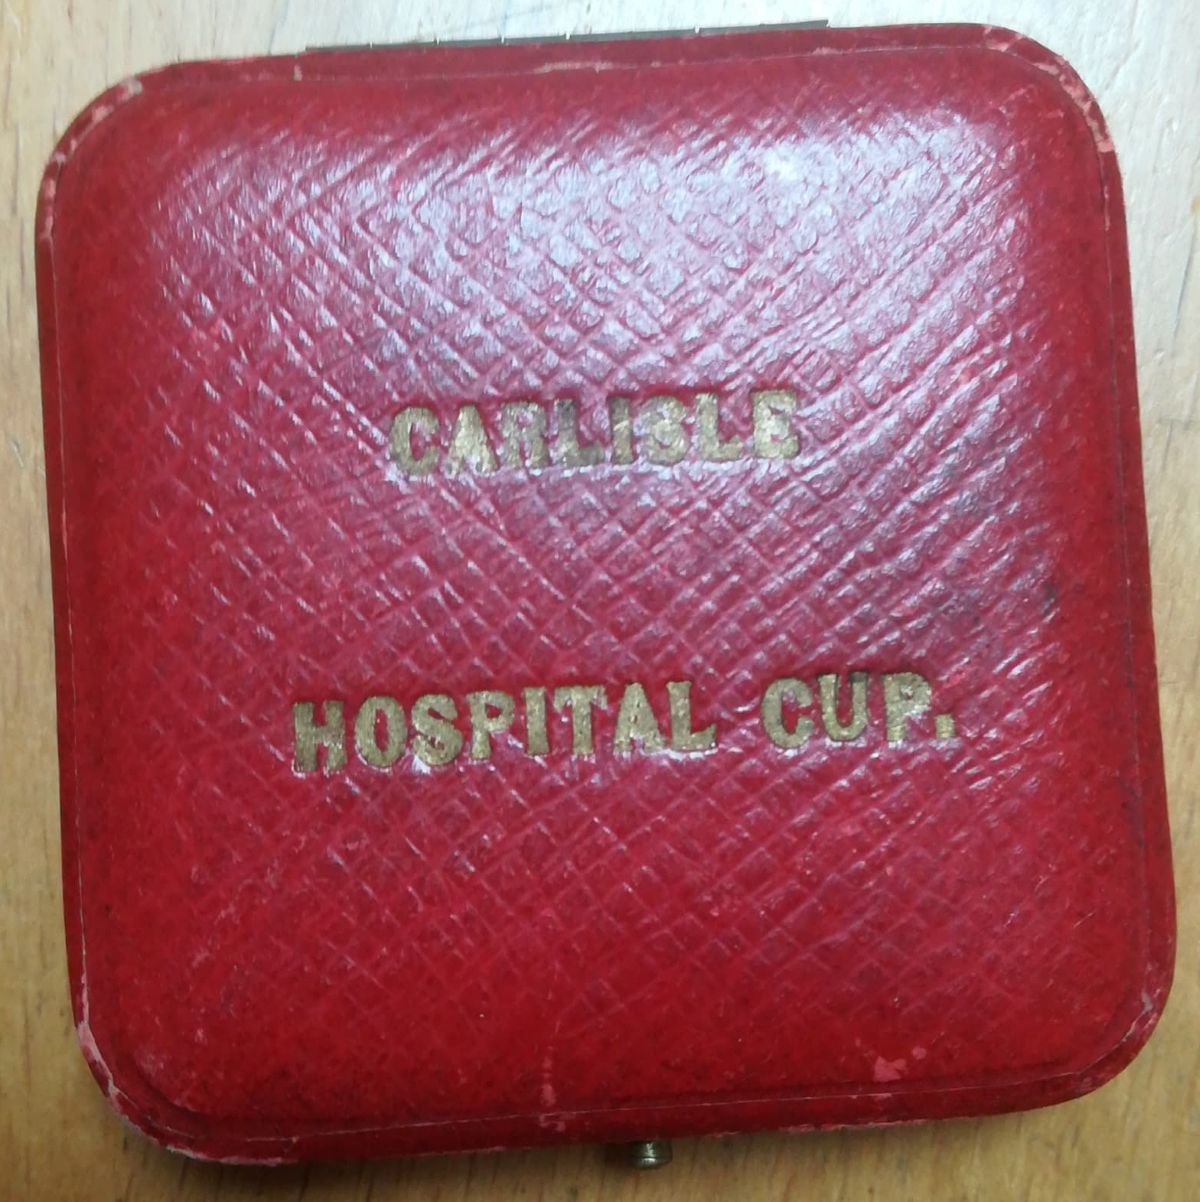 Carlisle Hospital Cup Winners Medal - 1921-22 - Box